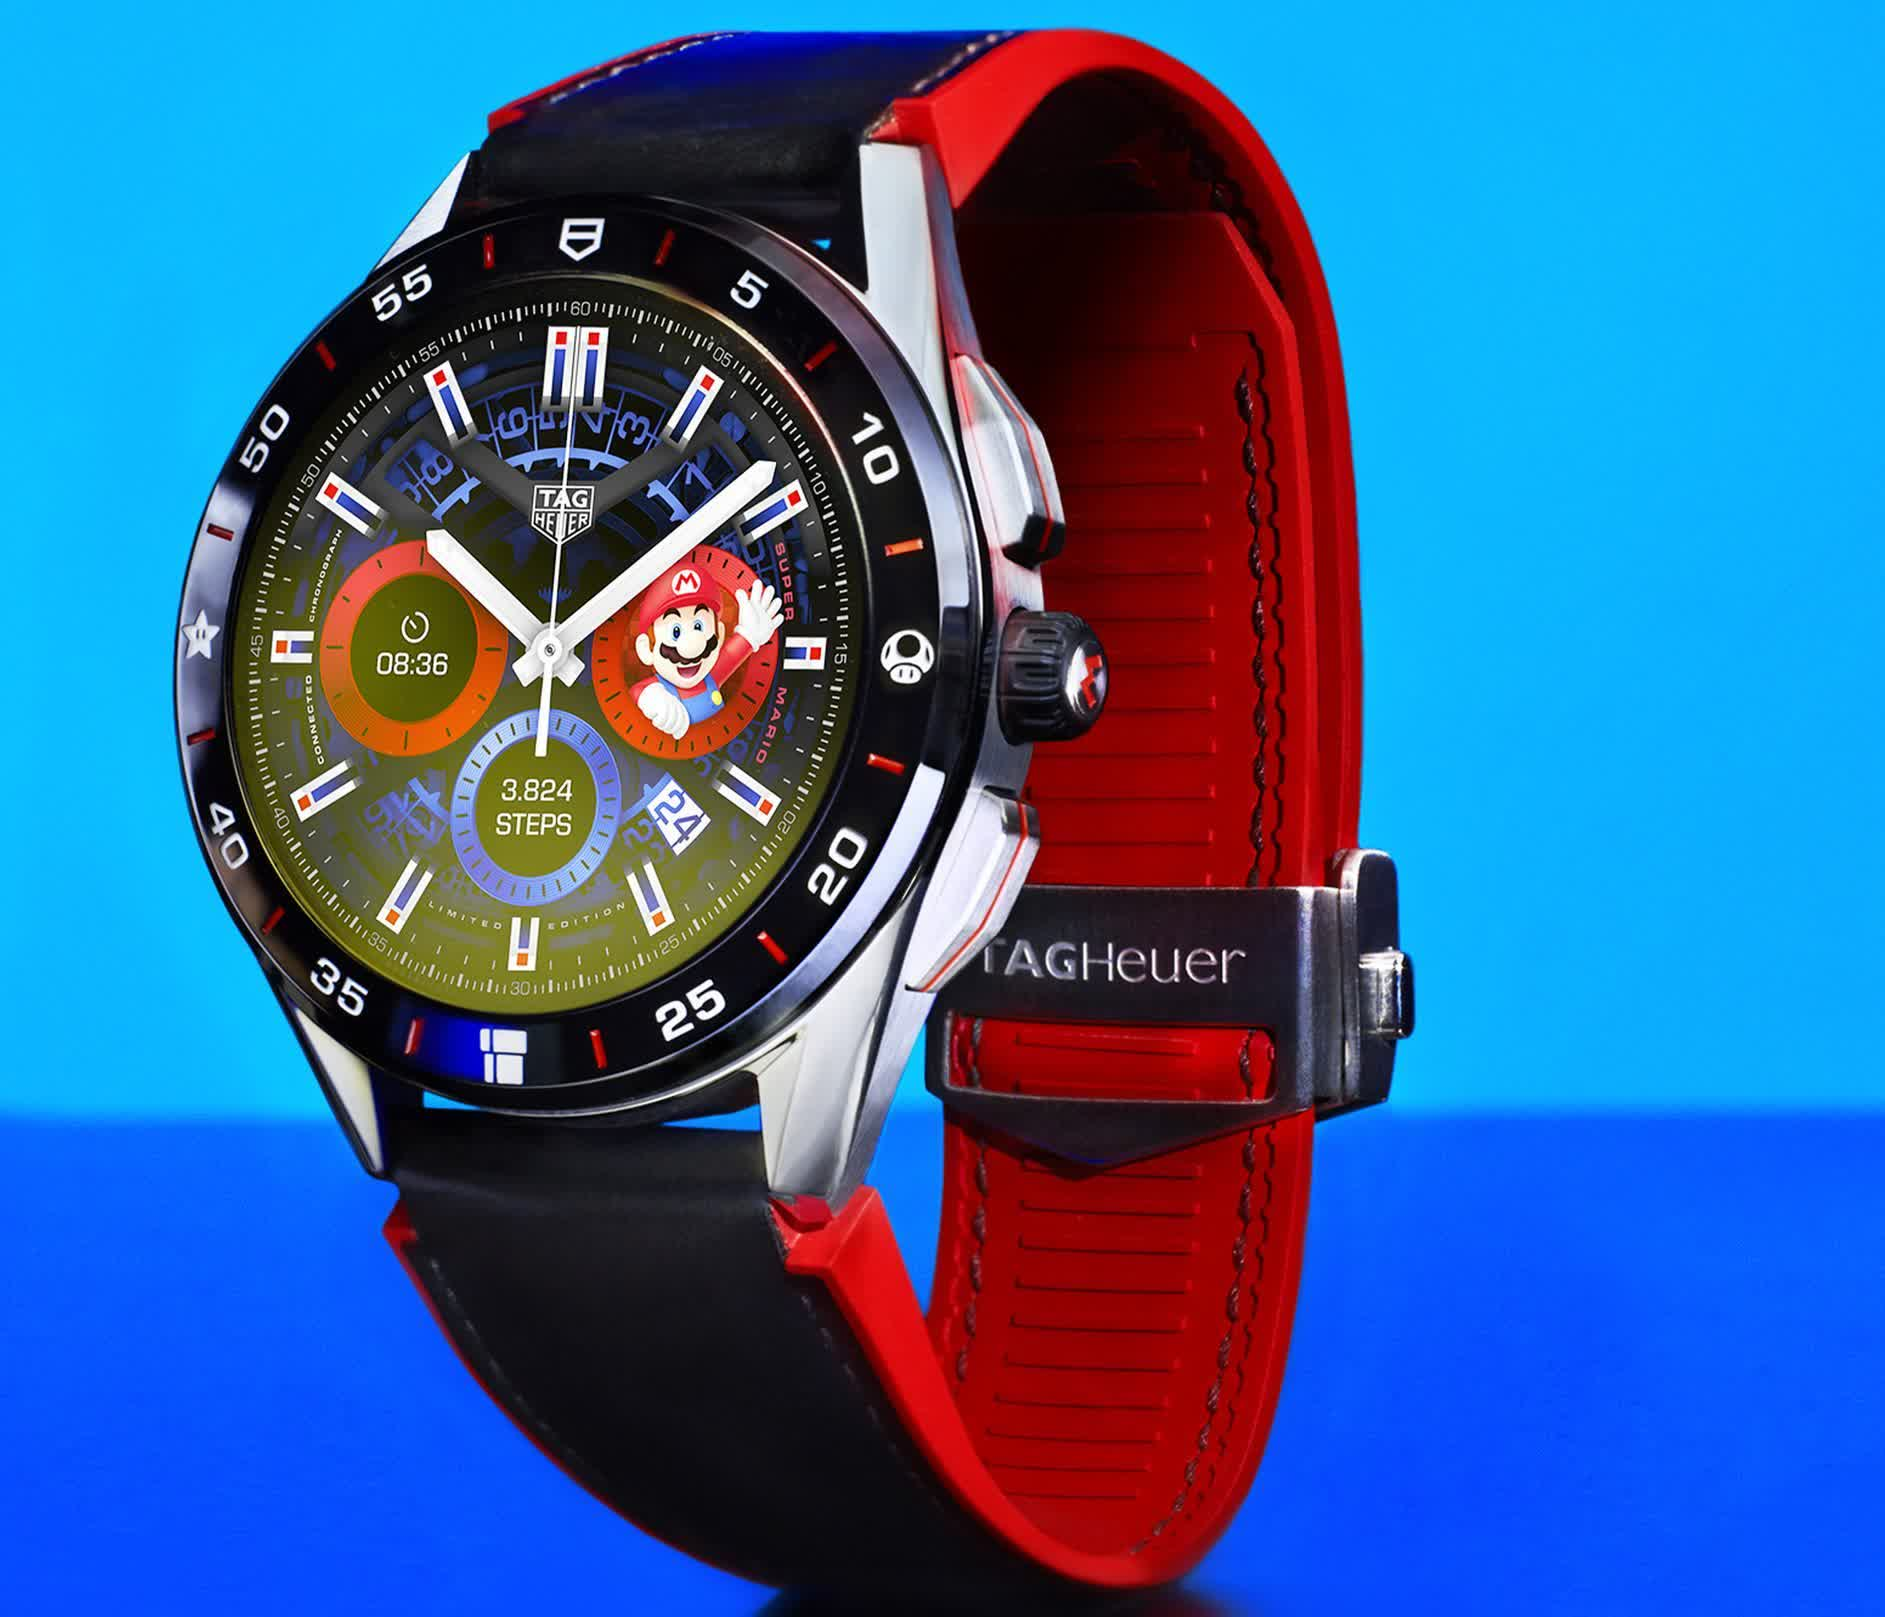 Tag Heuer announces $2,150 Super Mario-themed Android smartwatch